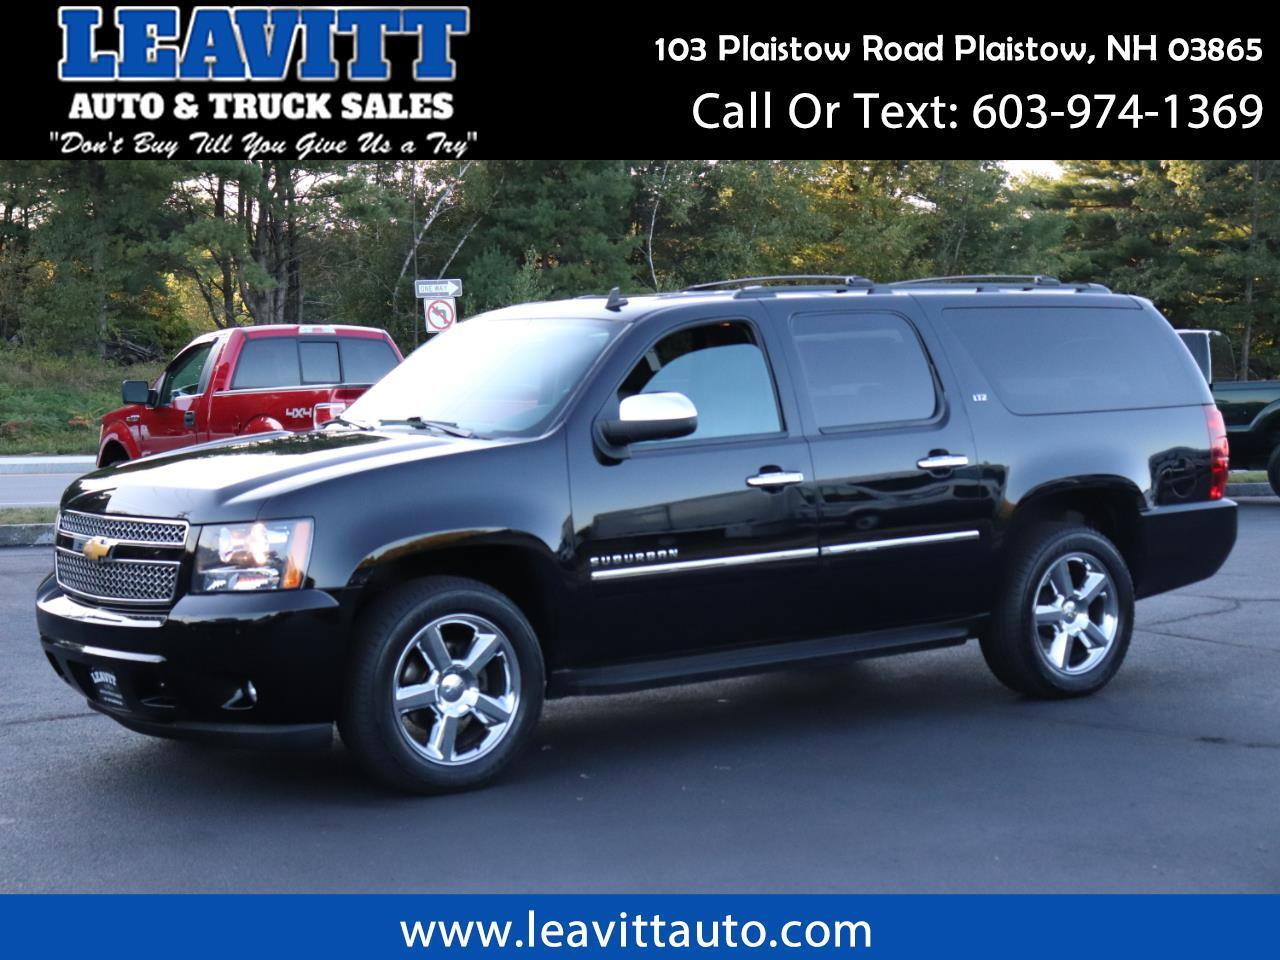 2014 Chevrolet Suburban LTZ BLACK/BLACK LOADED 62K MILES!!